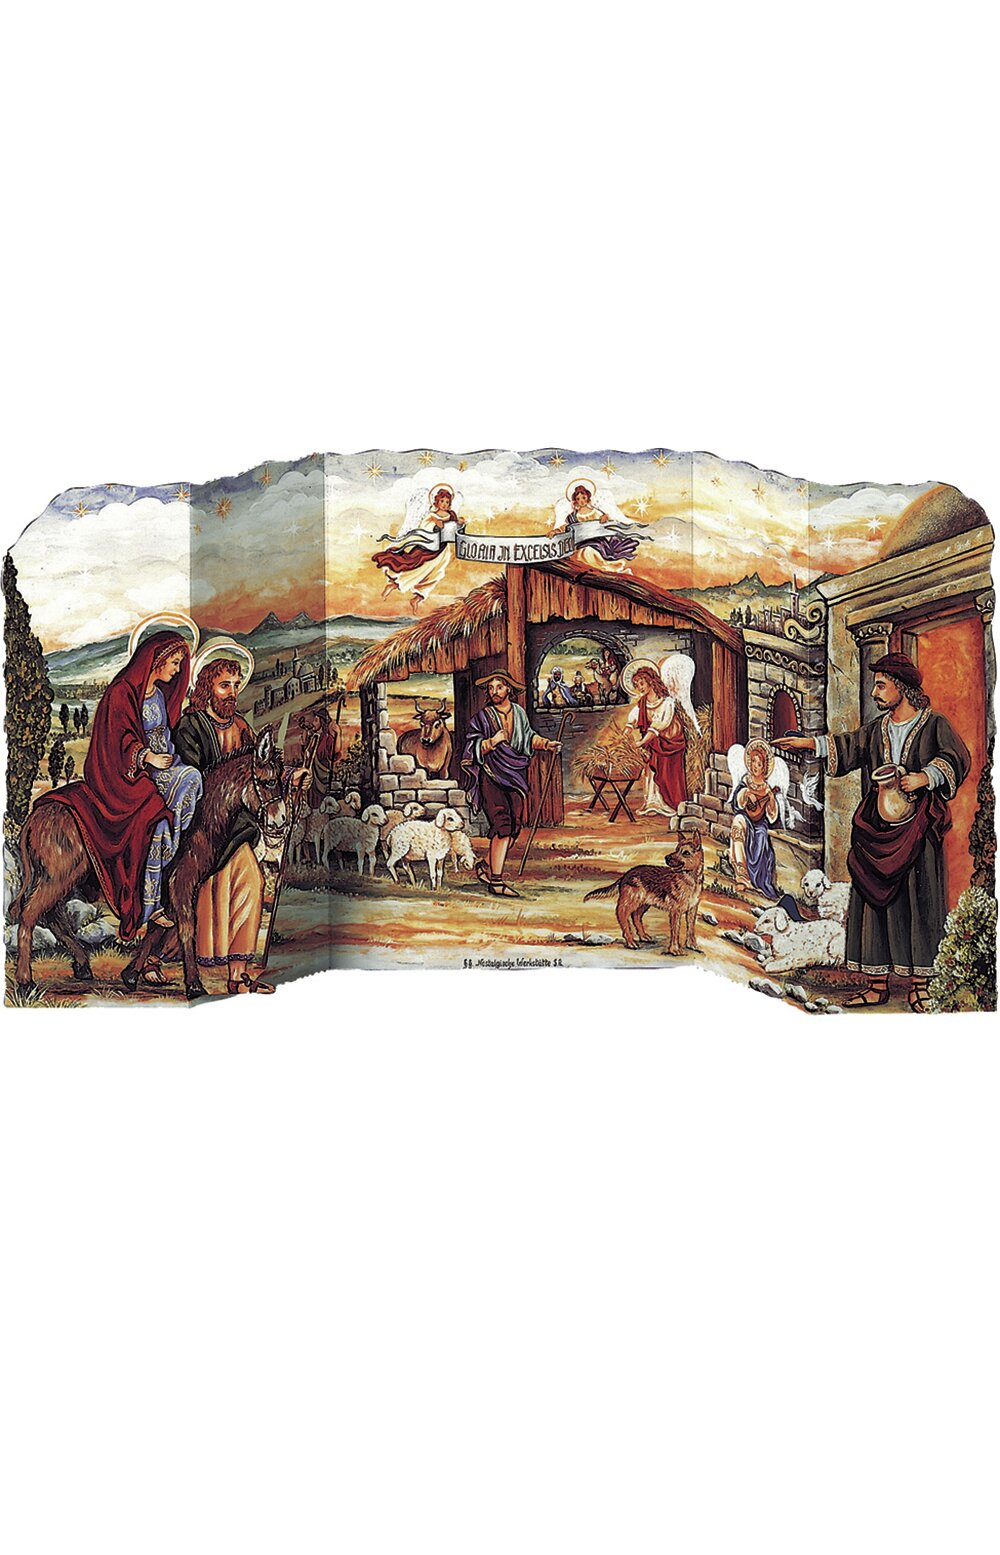 The Holiday Aisle Raci 3 Dimensional Nativity Scene Advent Calendar